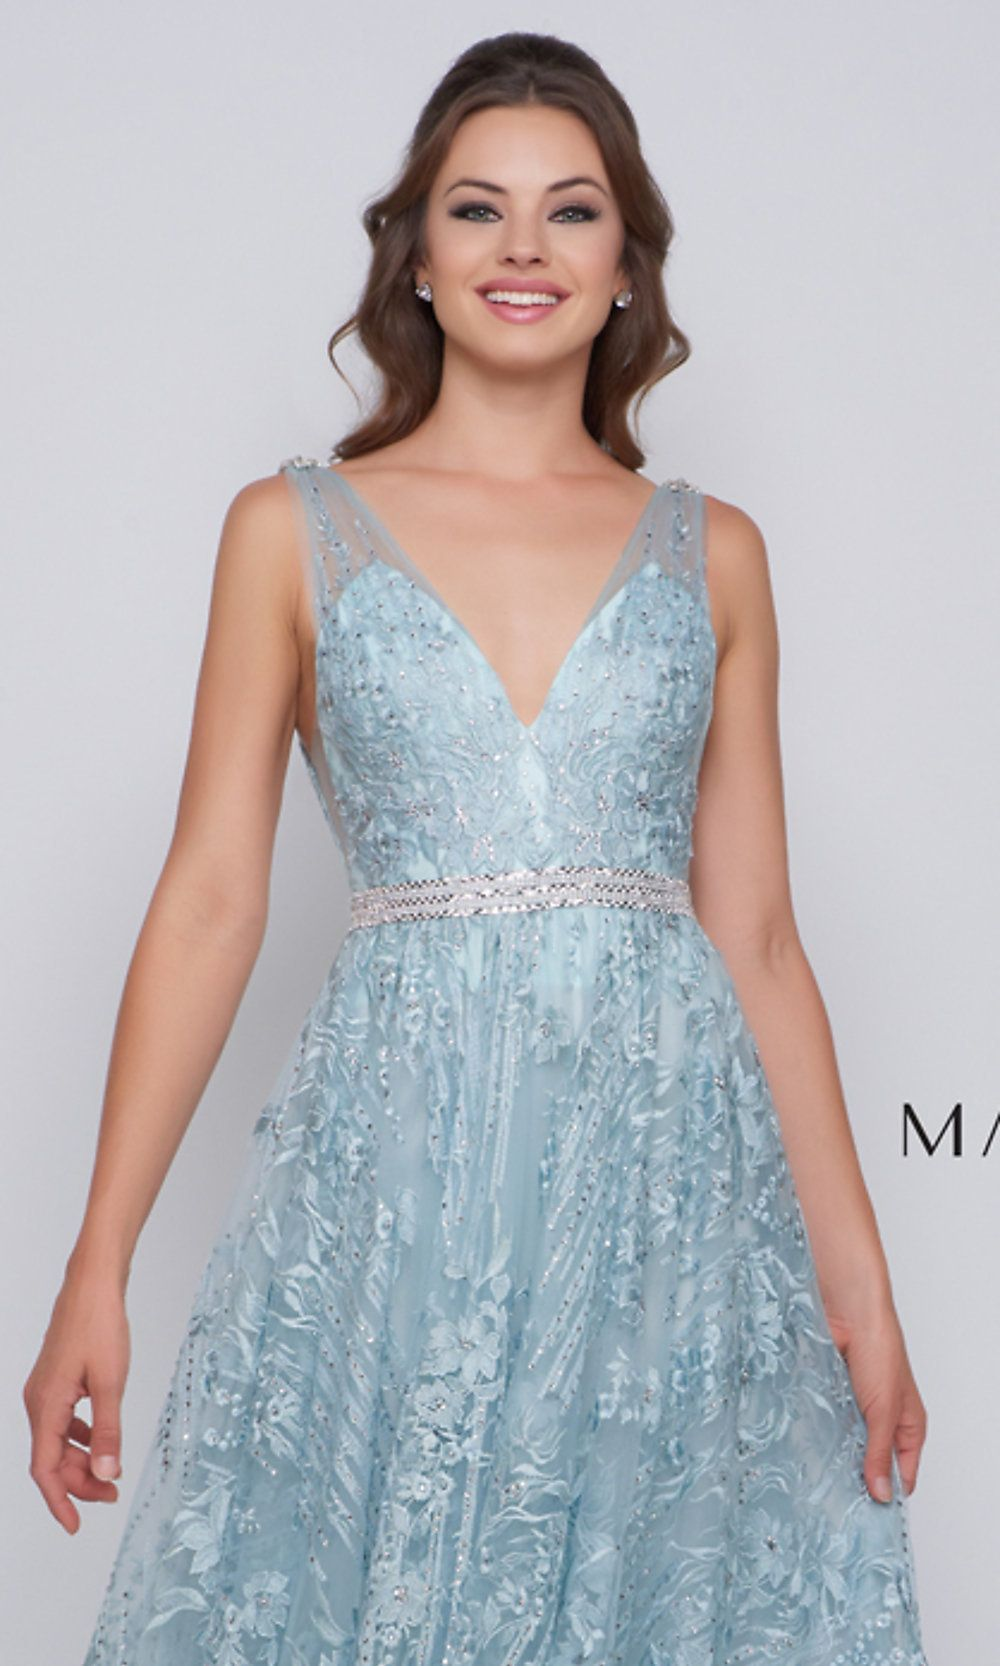 b2b66be8faf Long Embroidered Designer Prom Dress by Mac Duggal in 2019 ...